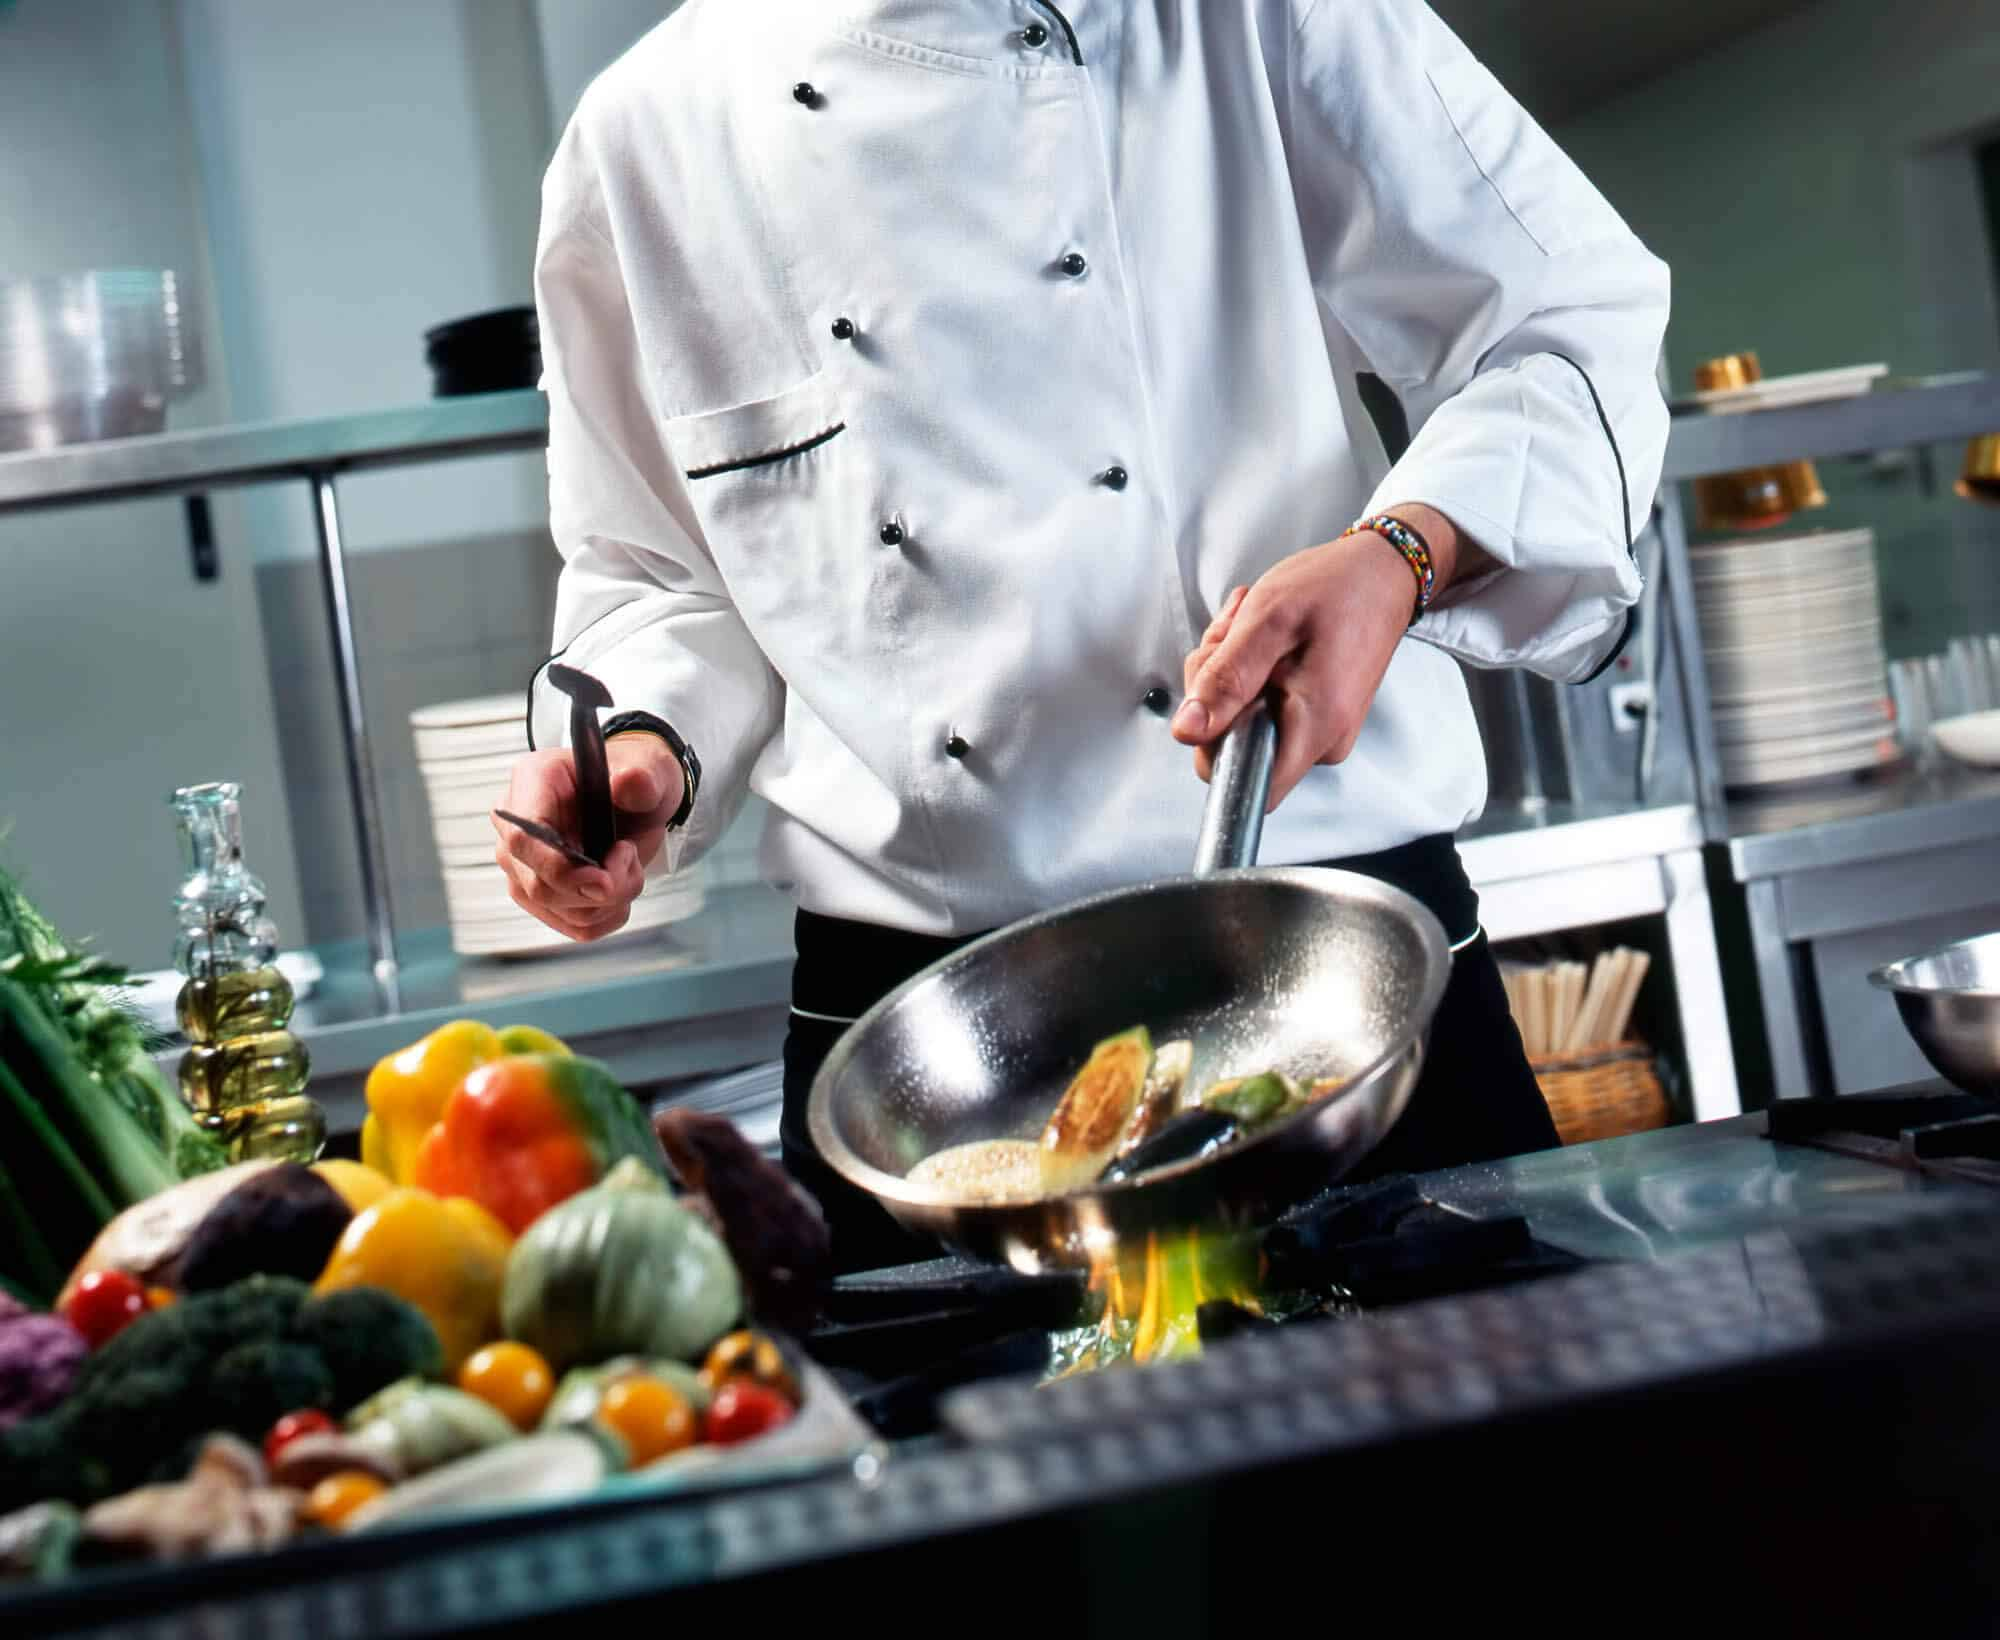 A chef using his cookware in the kitchen